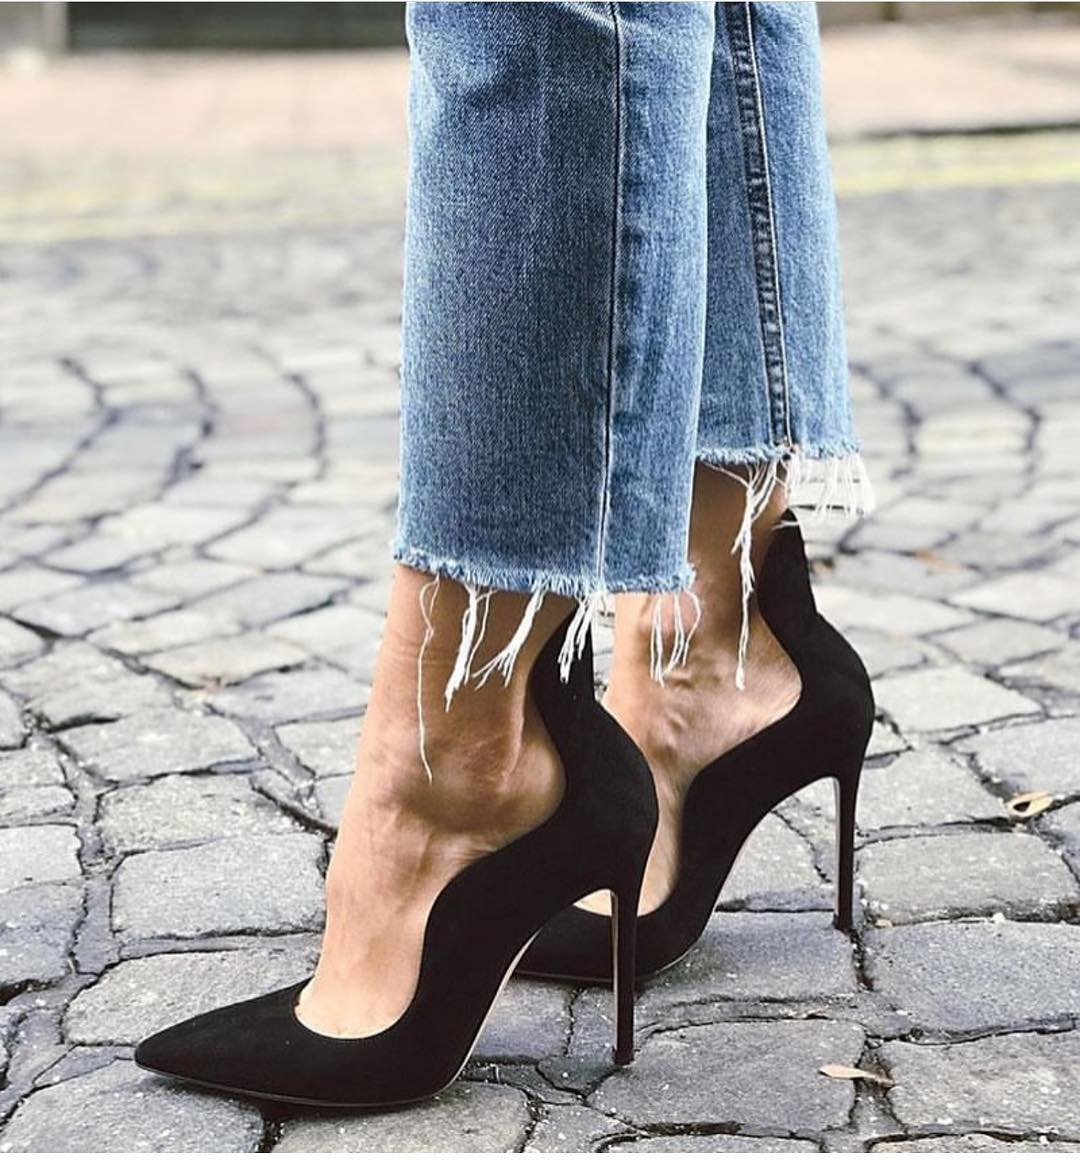 Classic Heeled Black Pumps With Frayed Blue Jeans For Spring 2020